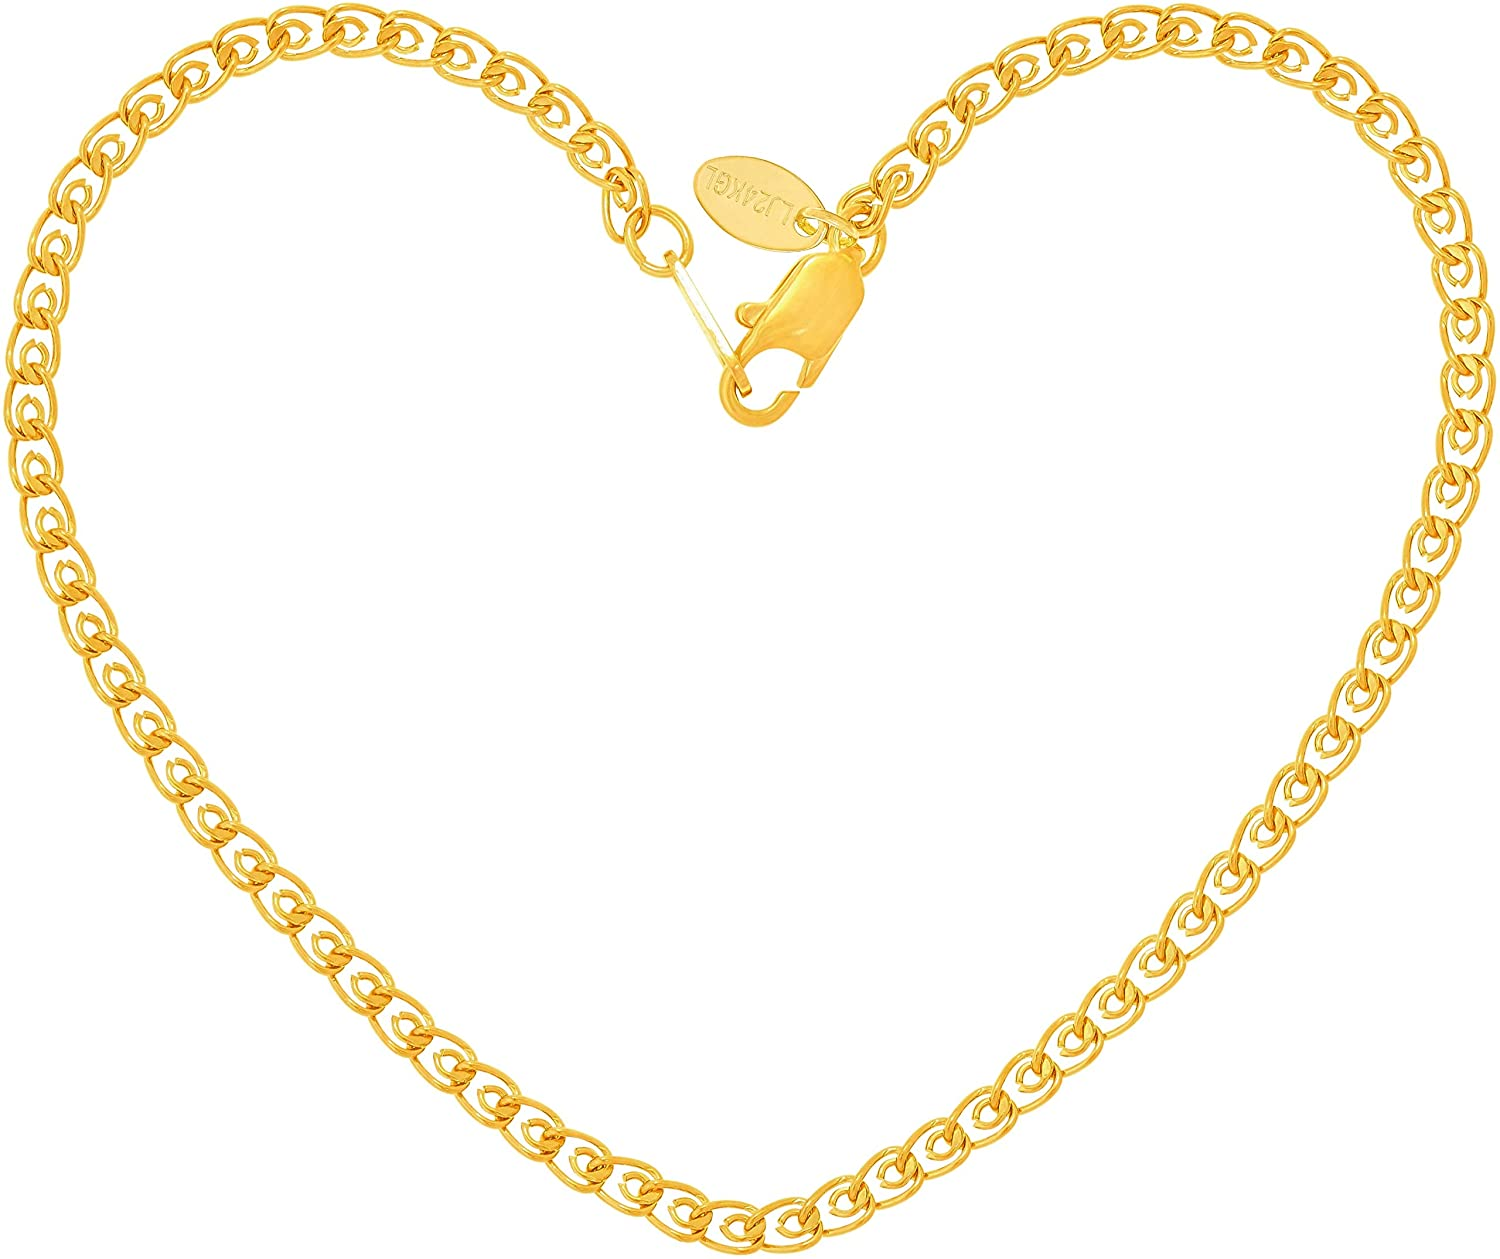 Lifetime Jewelry 2.7mm Open Weave Link Anklet for Women & Girls 24k Real Gold Plated